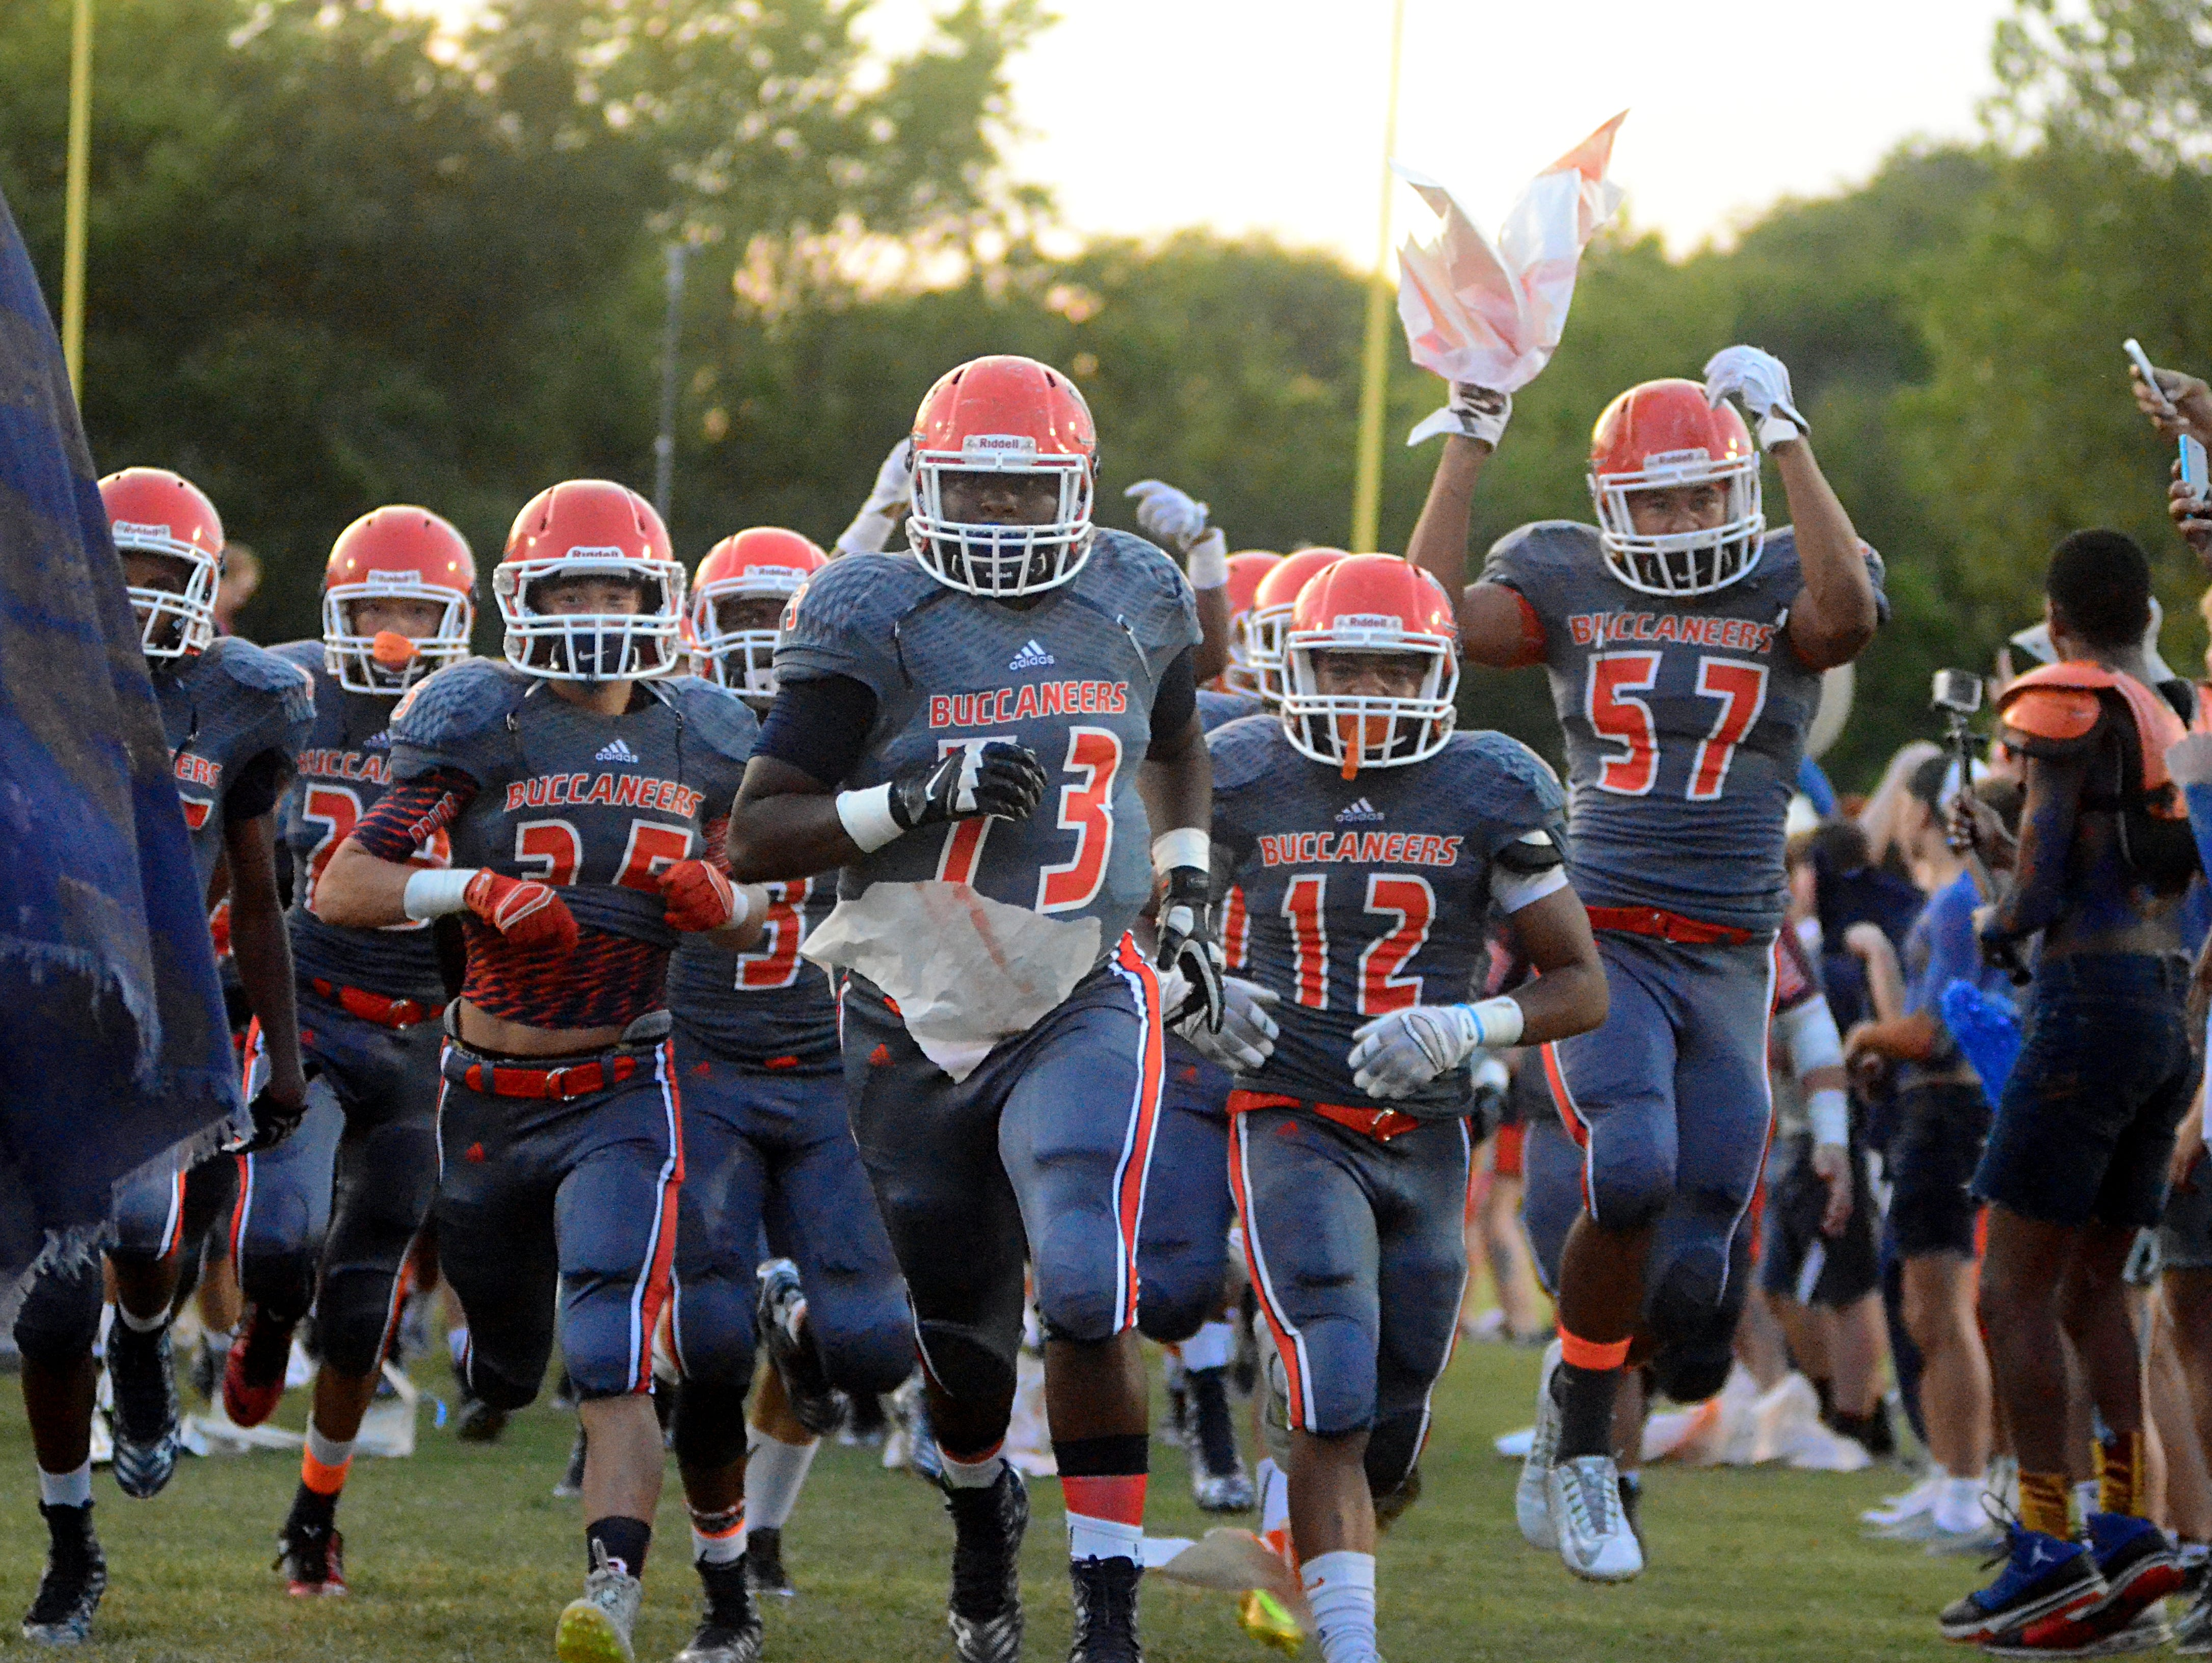 Beech players run onto the field prior to last season's game against Rossview. Beech travels to Rossview in the second week of the season.